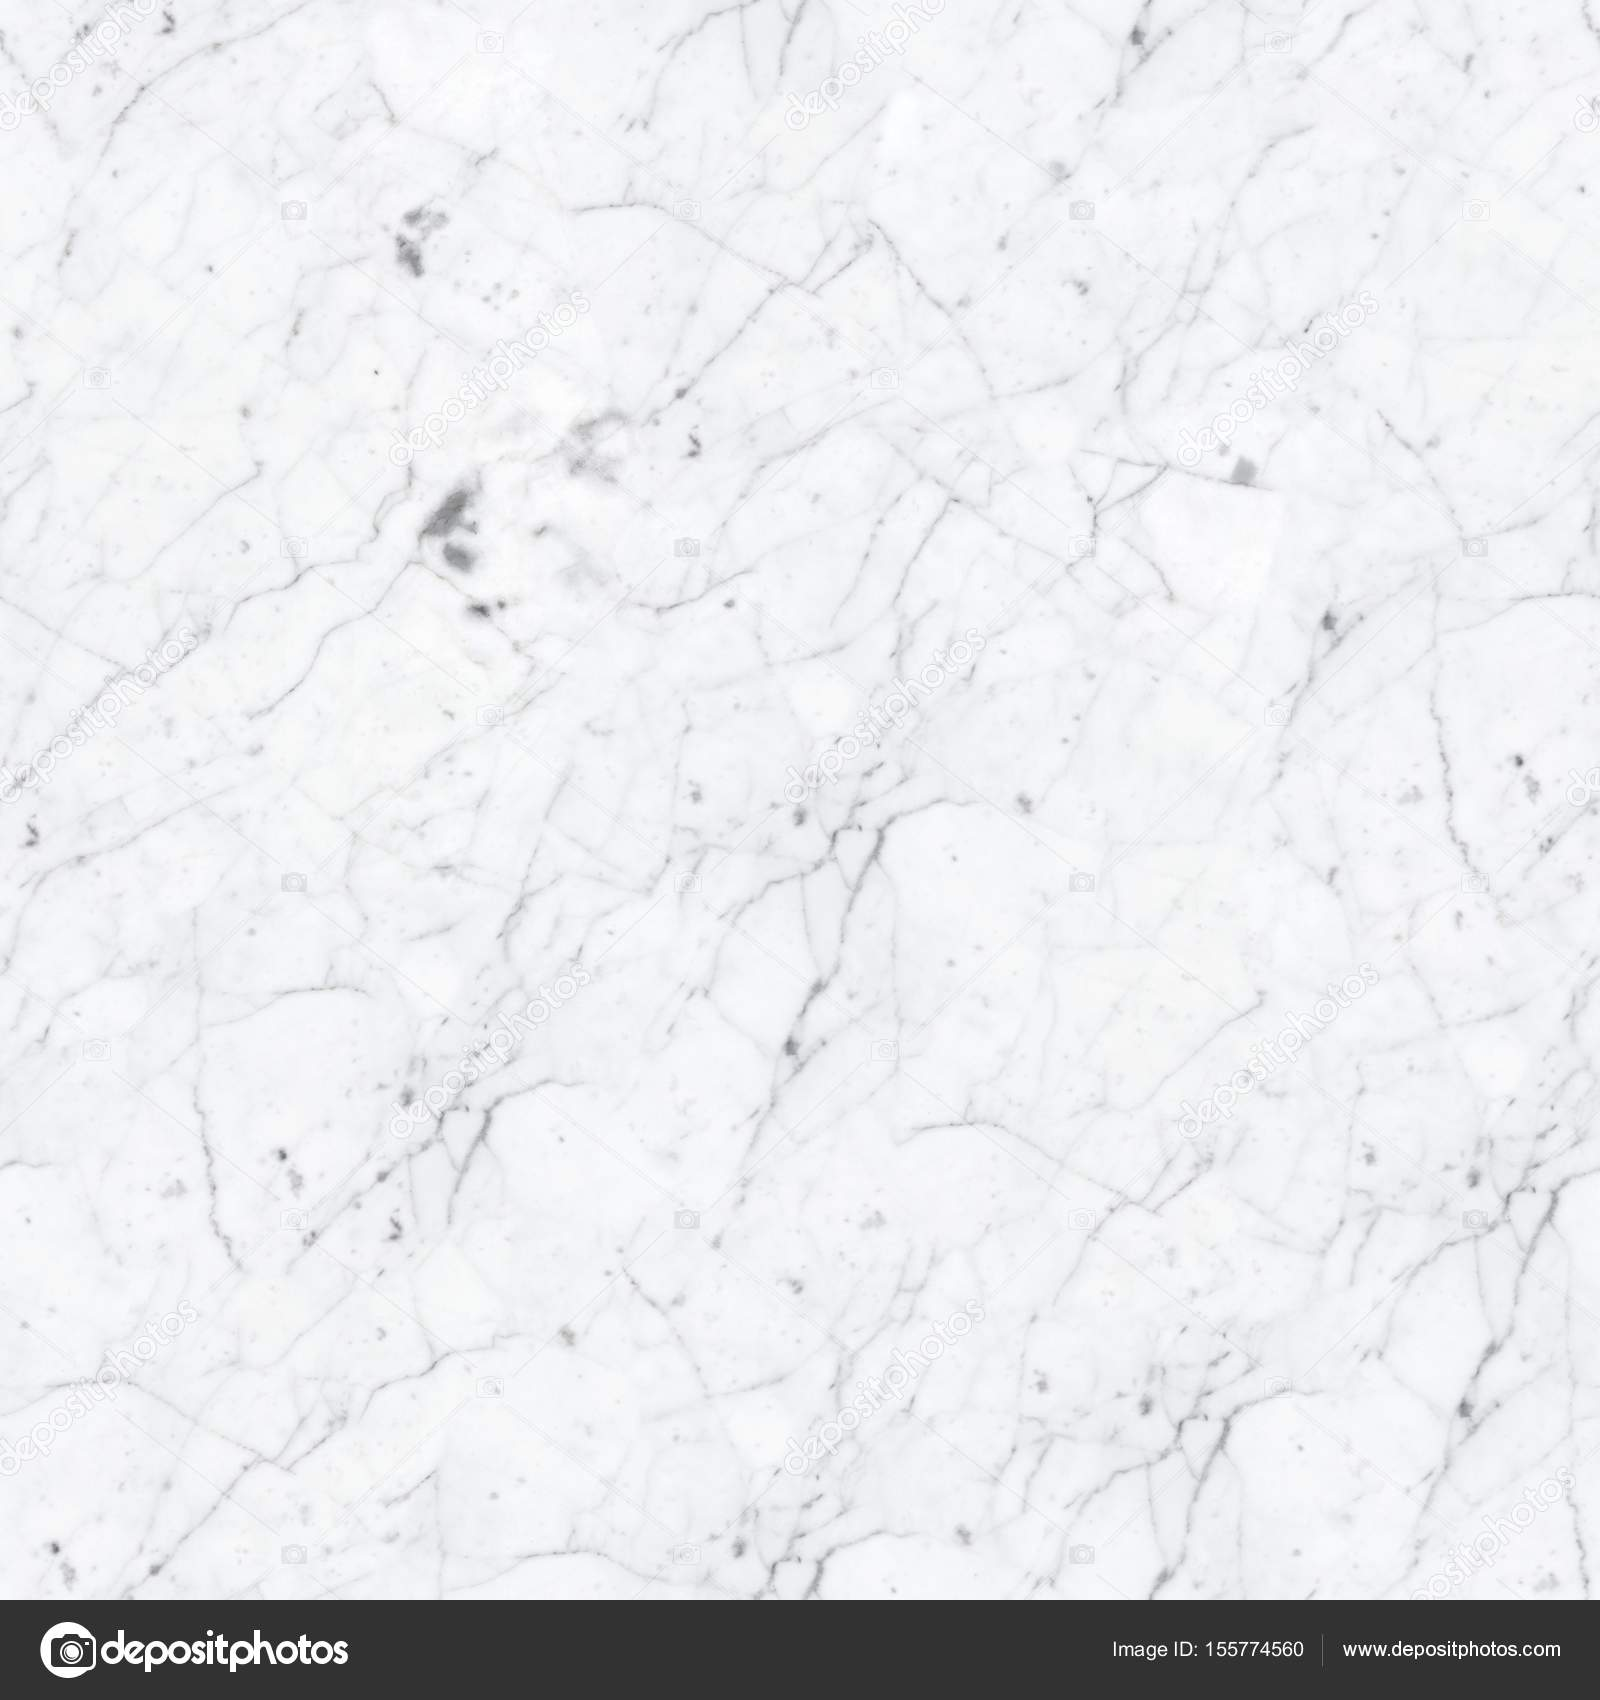 White Marble Texture Seamless White Marble Texture Seamless Square Background Tile Ready Stock Photo C Yamabikay 155774560